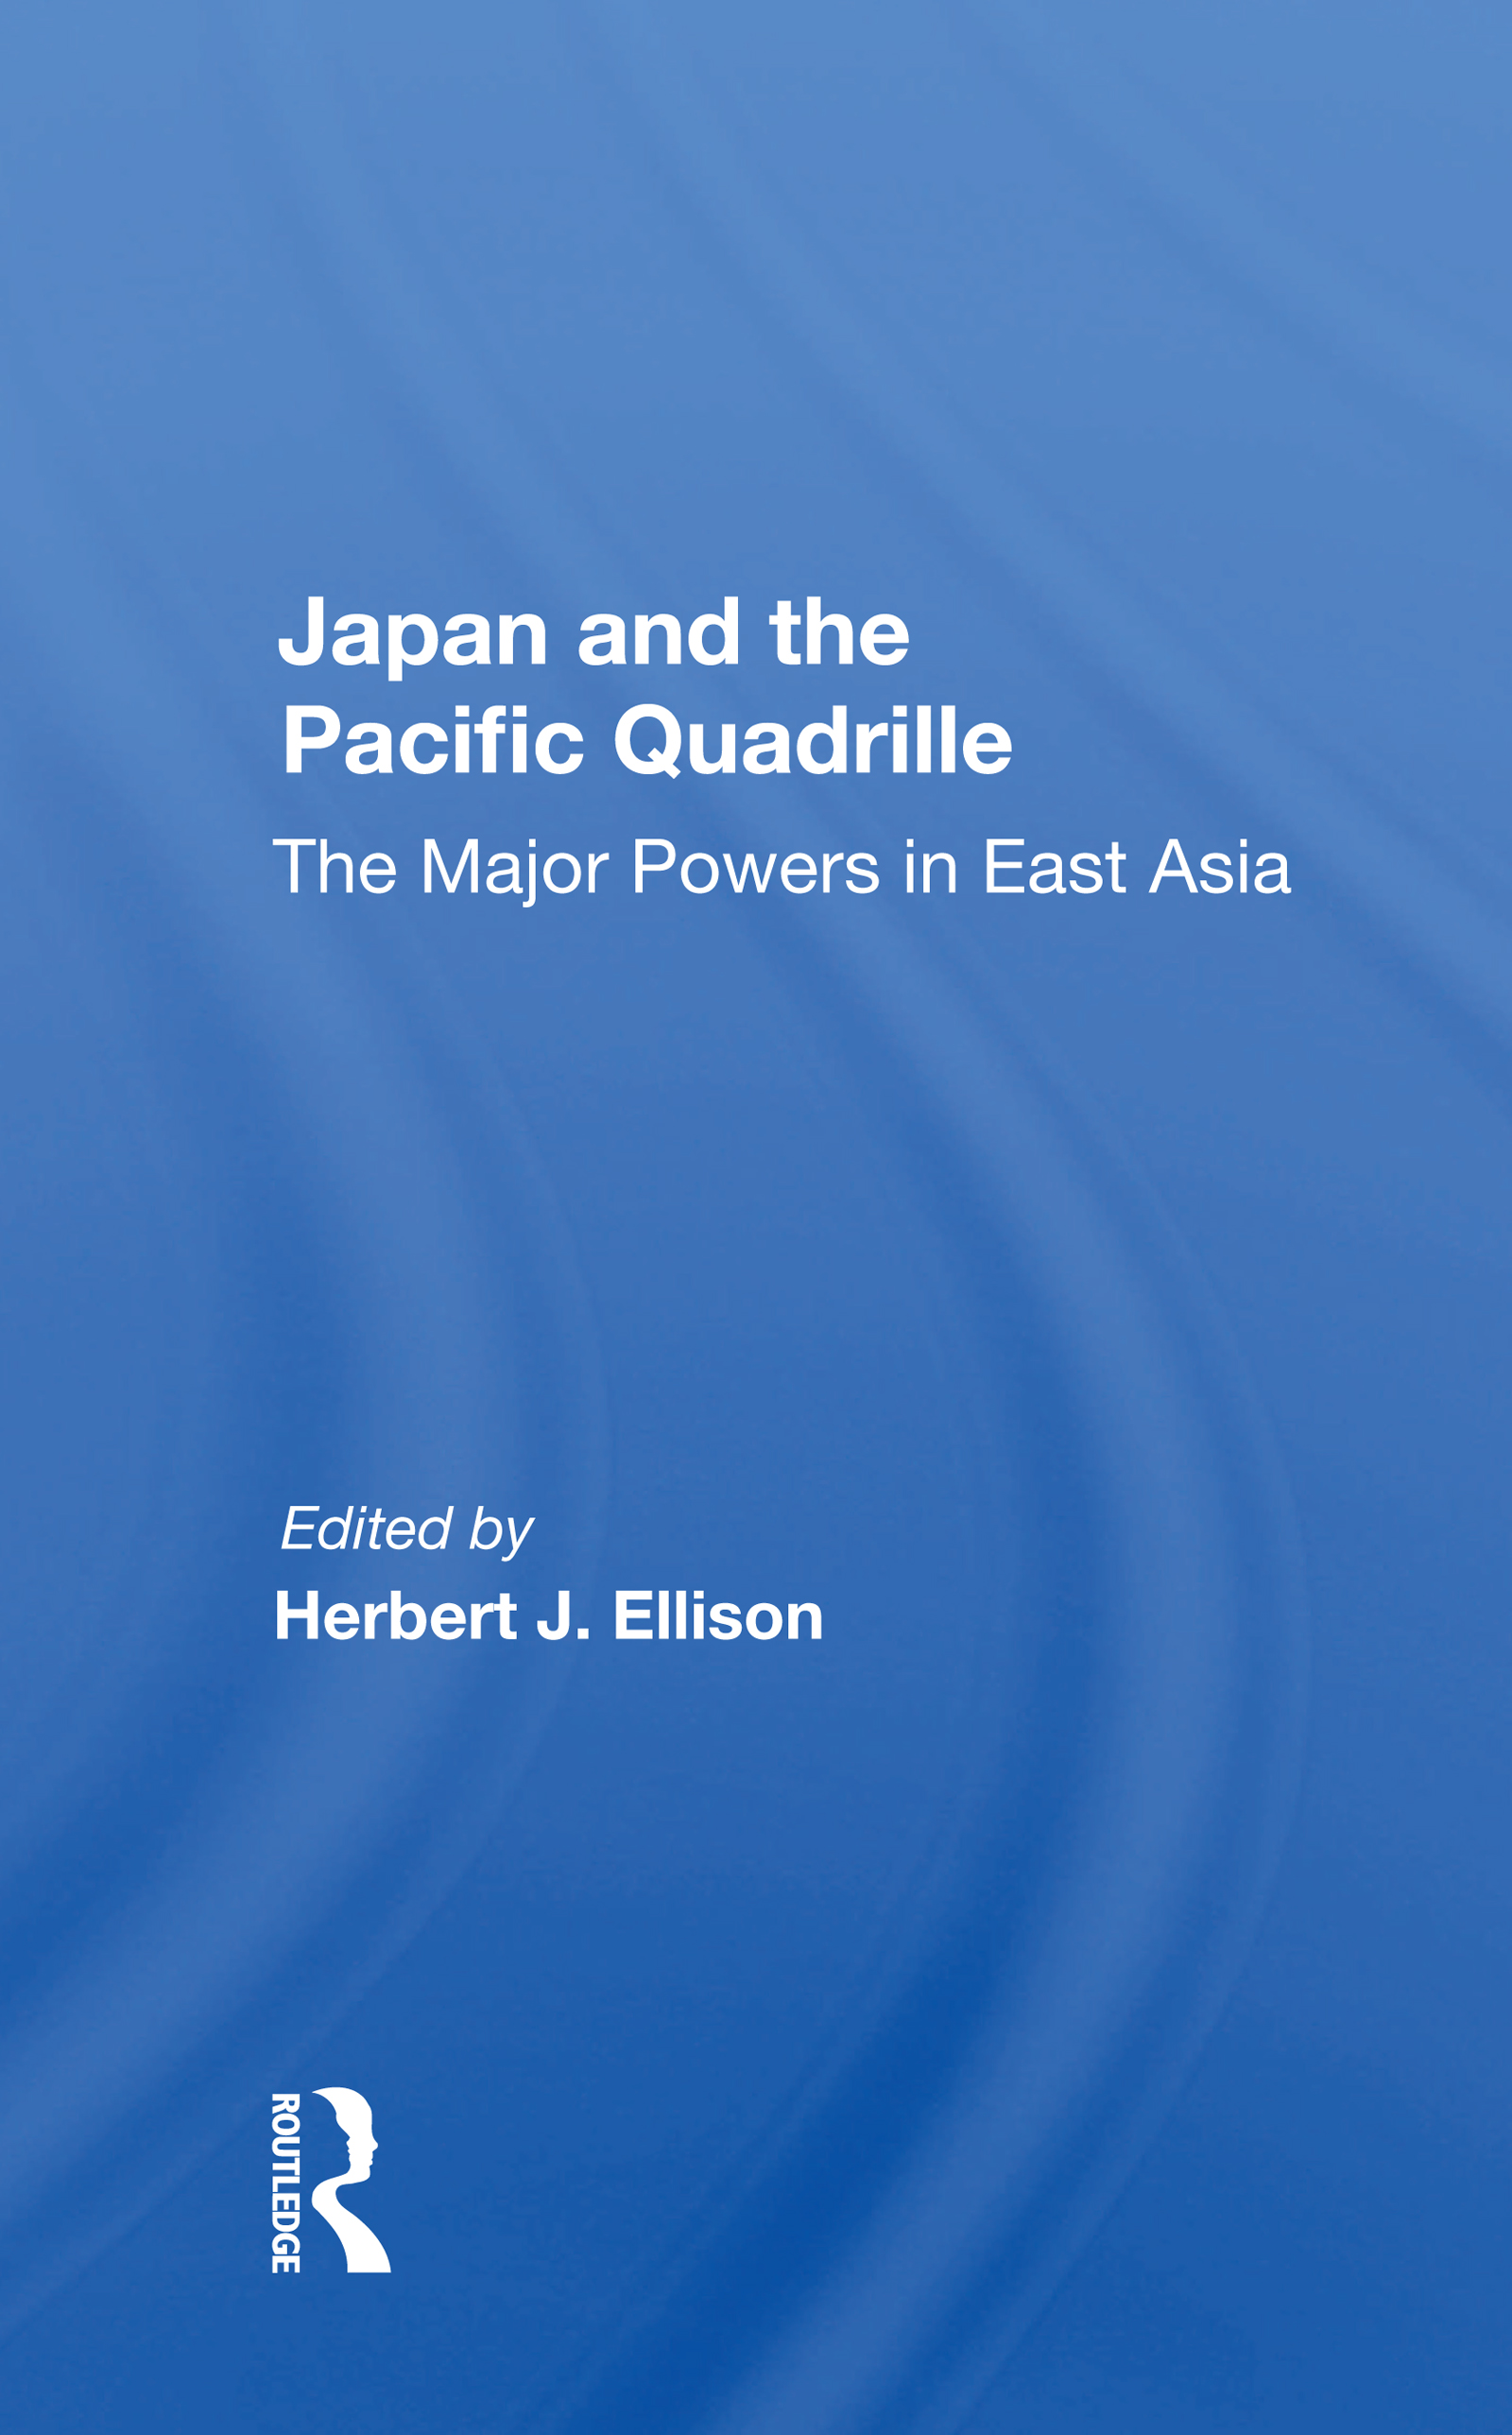 Japan and the Pacific Quadrille